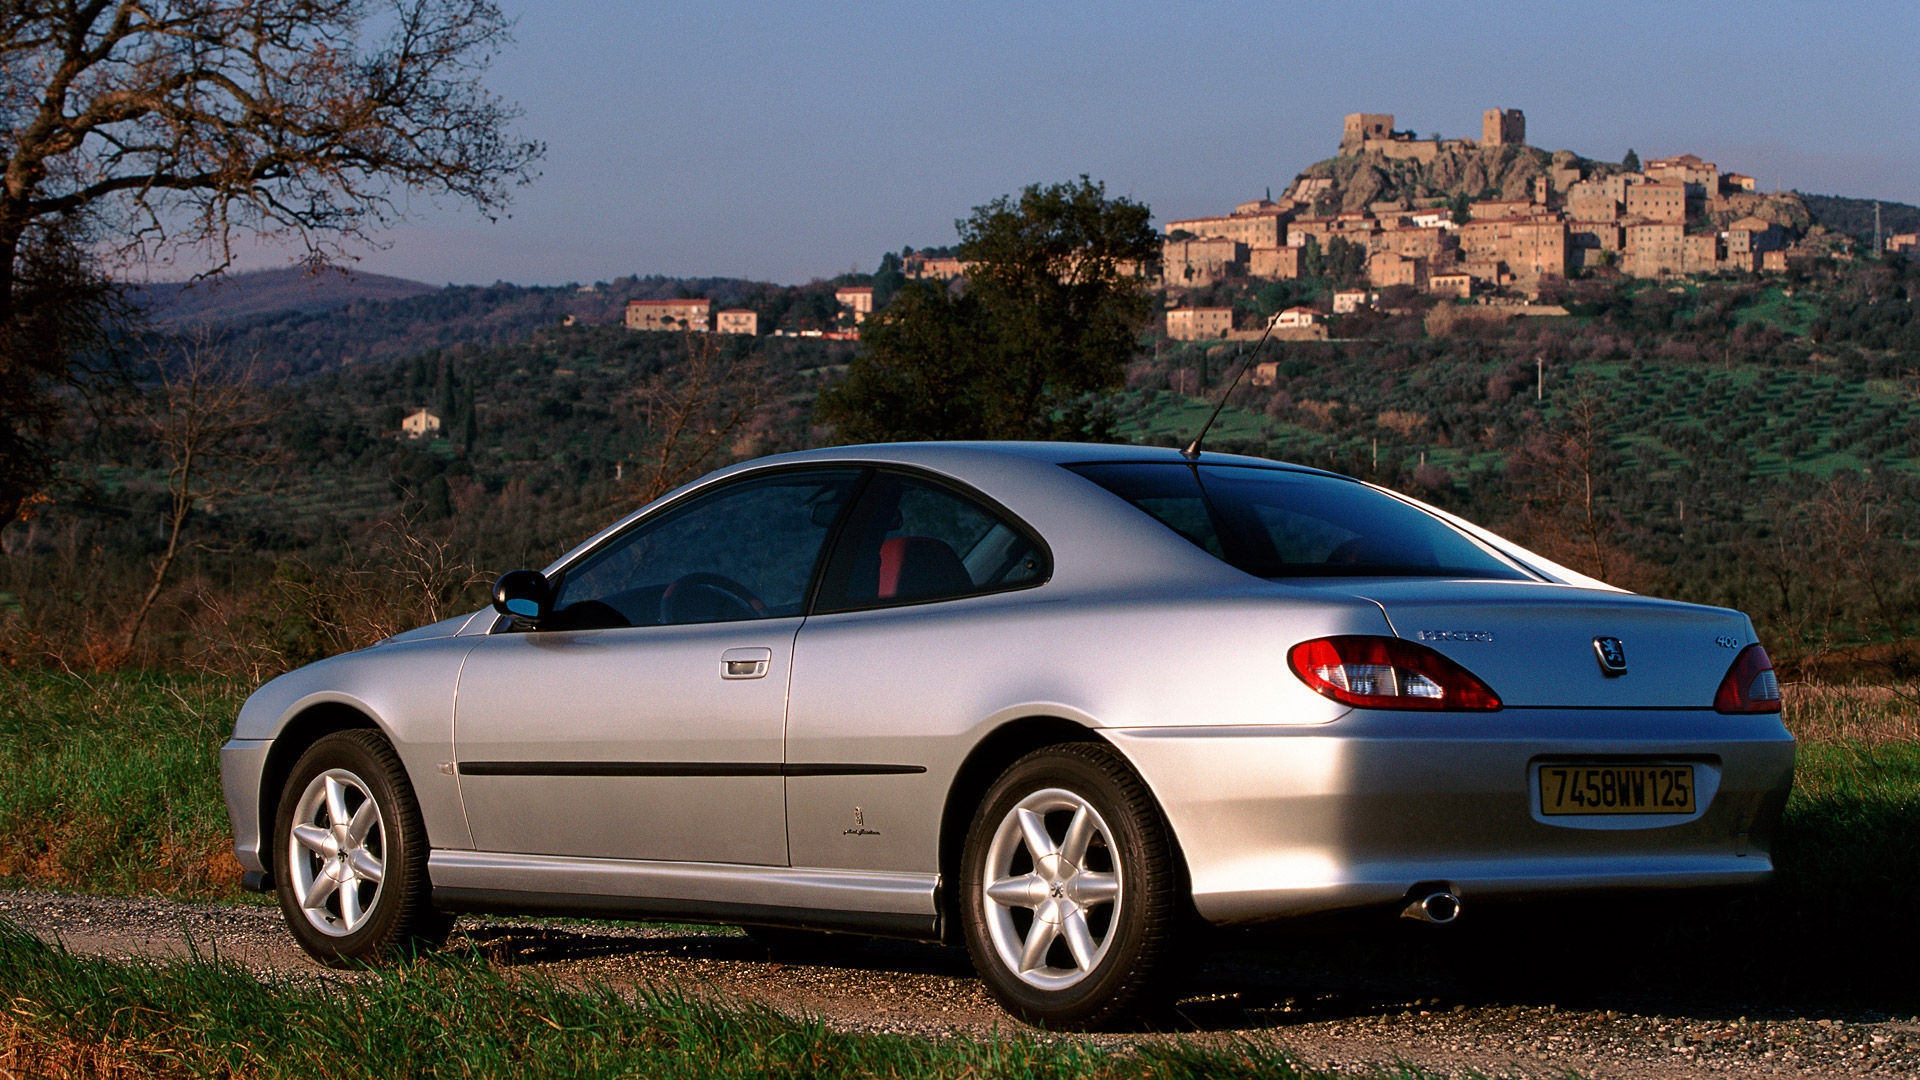 1997 Peugeot 406 Coupe